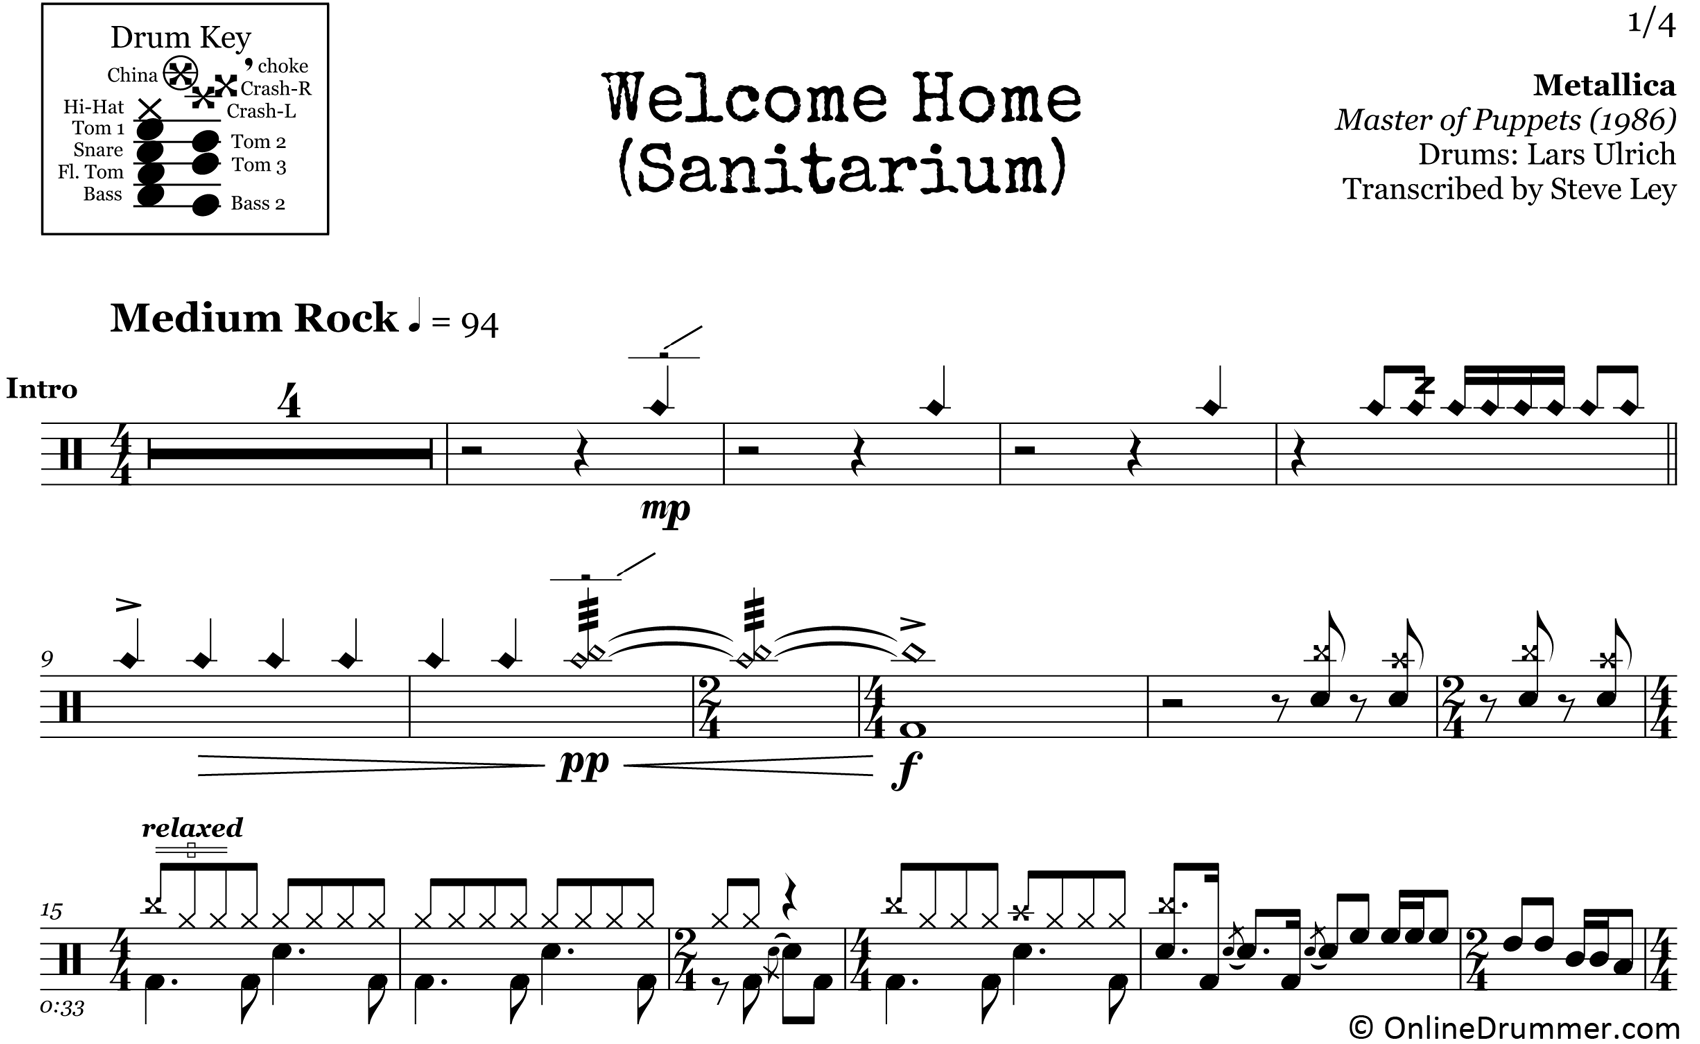 Welcome Home (Sanitarium) - Metallica - Drum Sheet Music